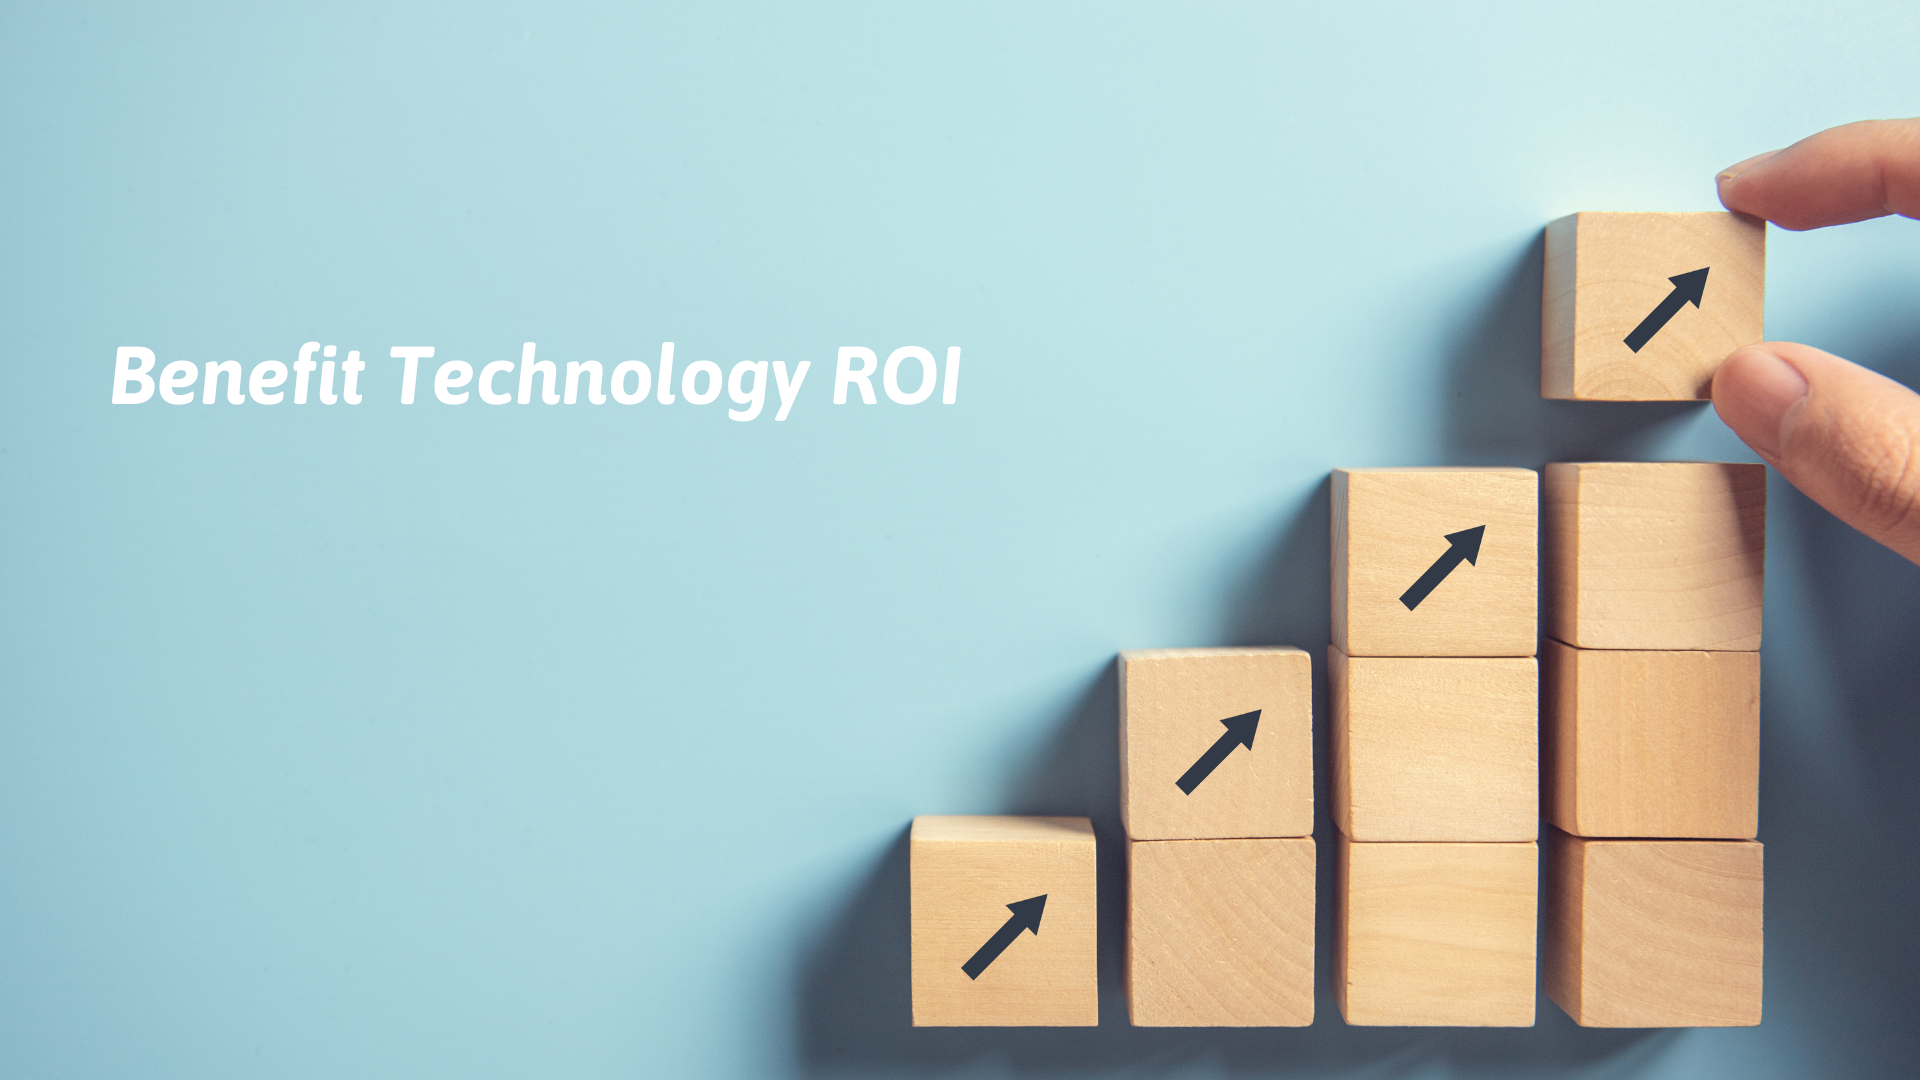 Benefit Tech ROI